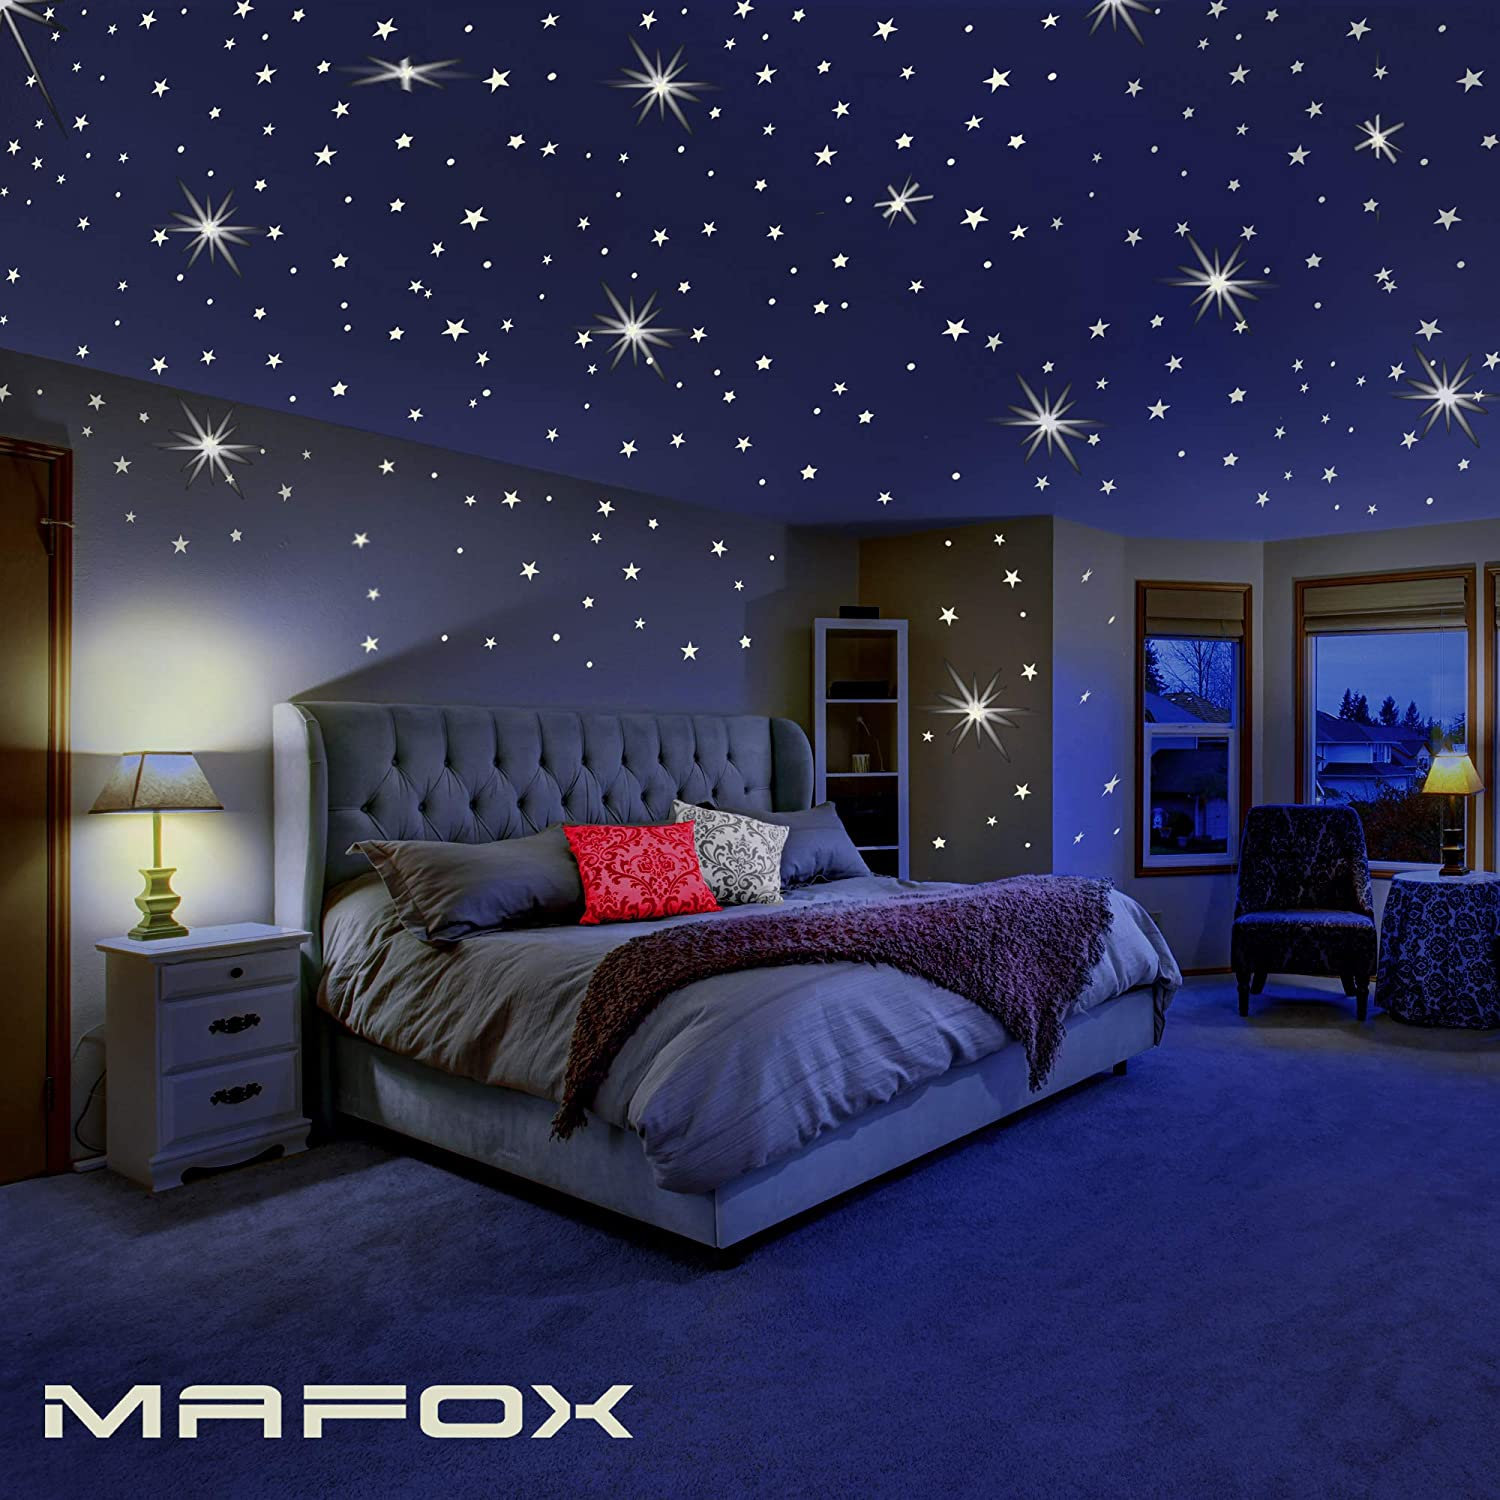 Glow in The Dark Stars for Ceiling or Wall Stickers - Glowing Wall Decals  Stickers Room Decor Kit - Galaxy Glow Star Set and Solar System Decal for  ...